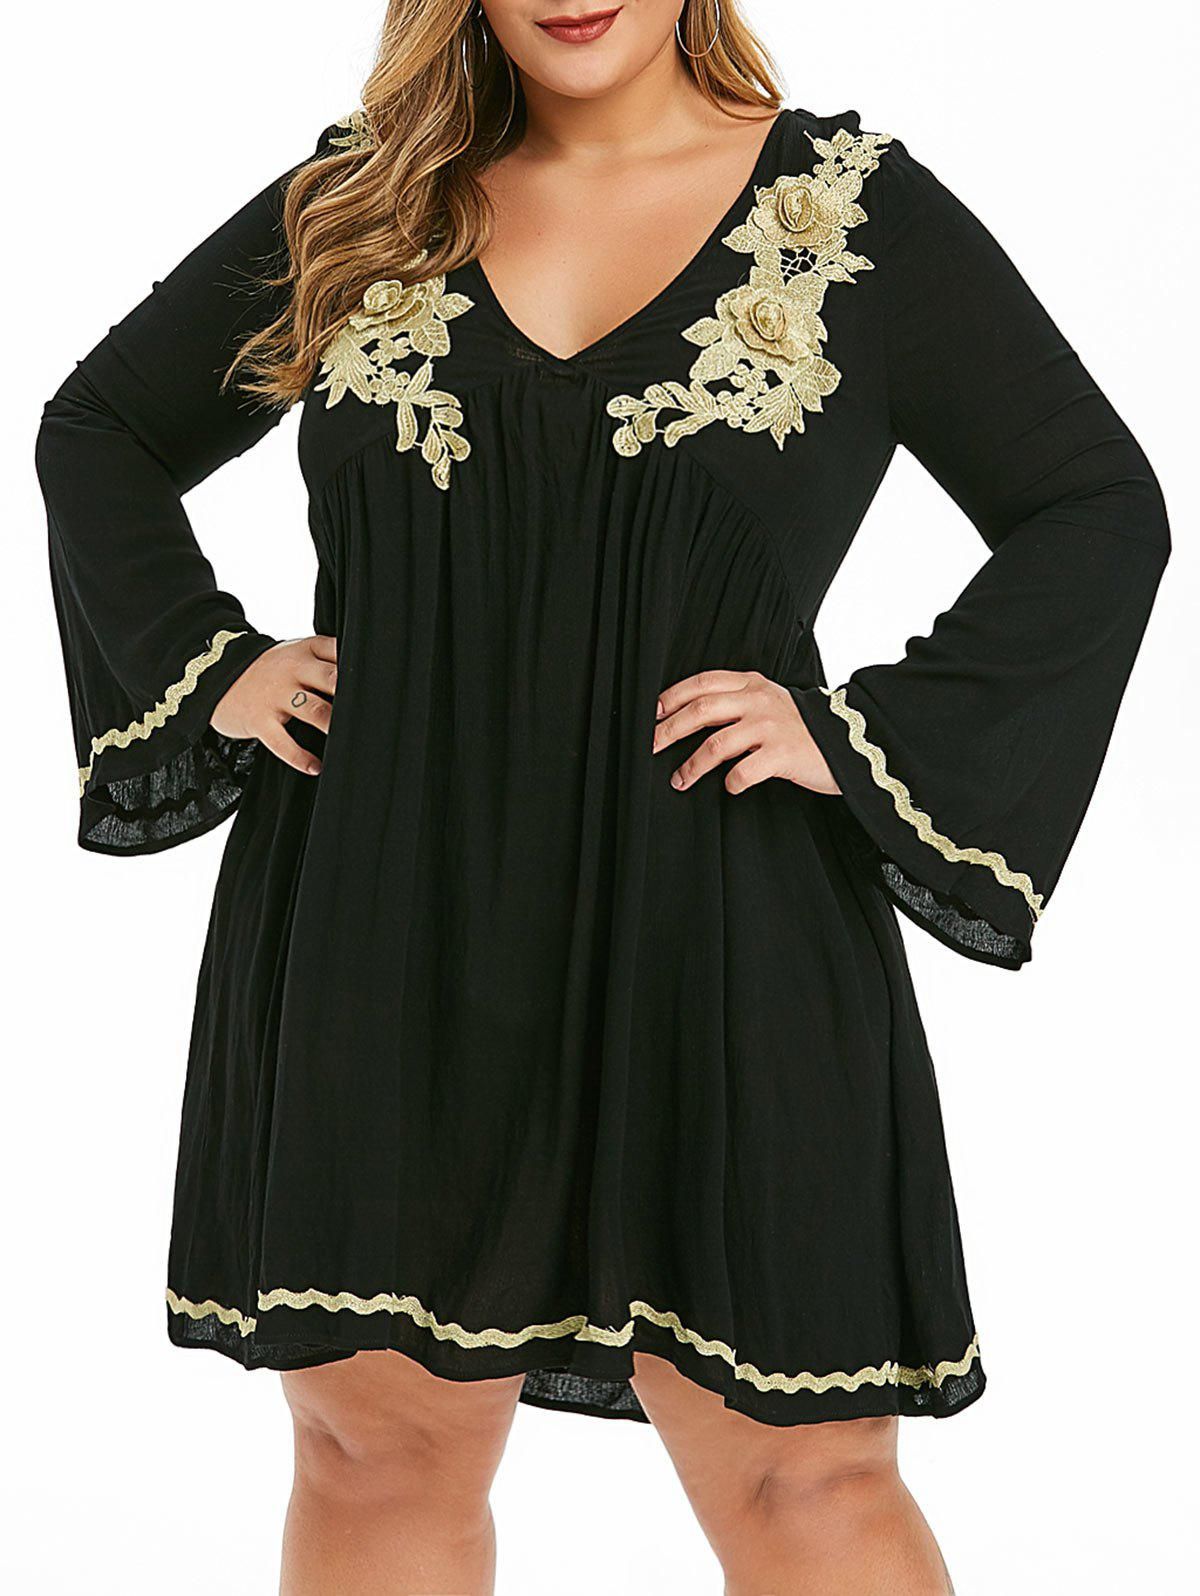 New Plus Size Embroidered Empire Waist Dress